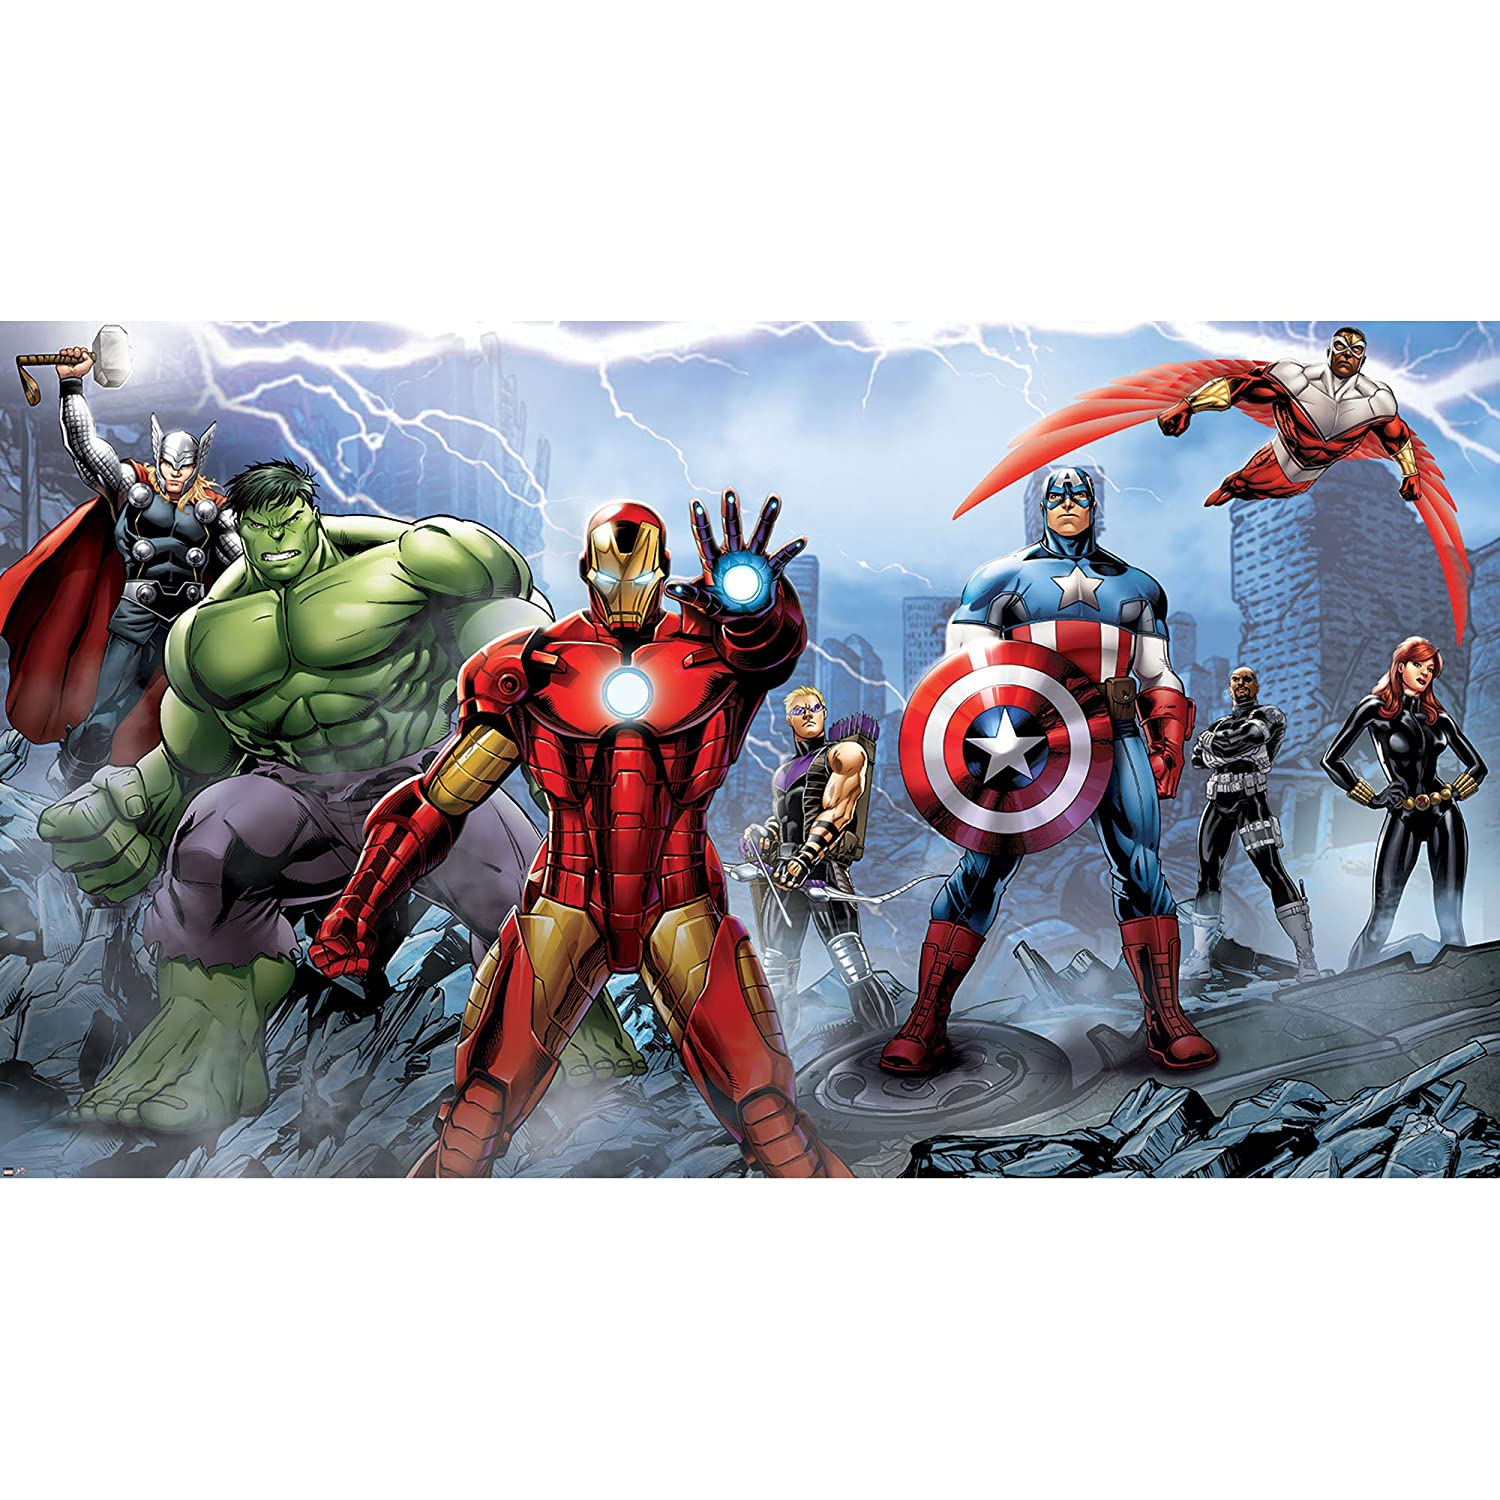 RoomMates JL1292M Ultra-Strippable Avengers Assemble Mural, 6-Feet x 10.5-Feet